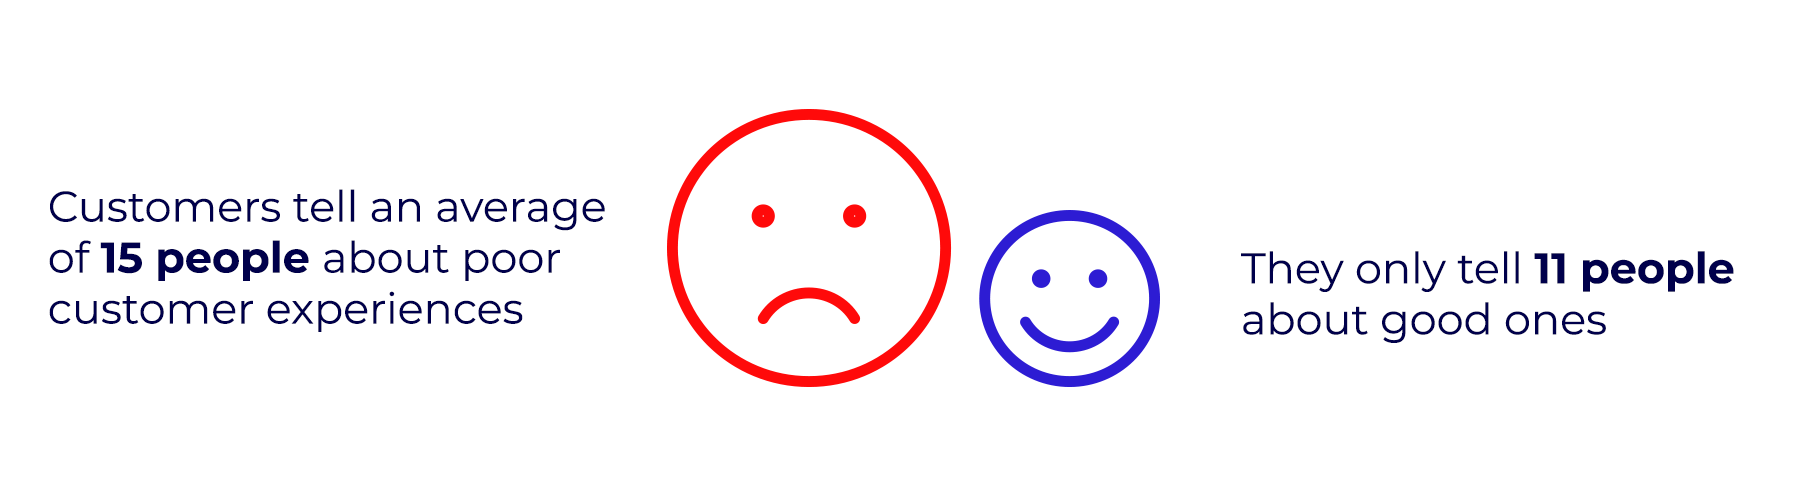 On average, customers tell 15 people about a poor experience and 11 about a good experience.